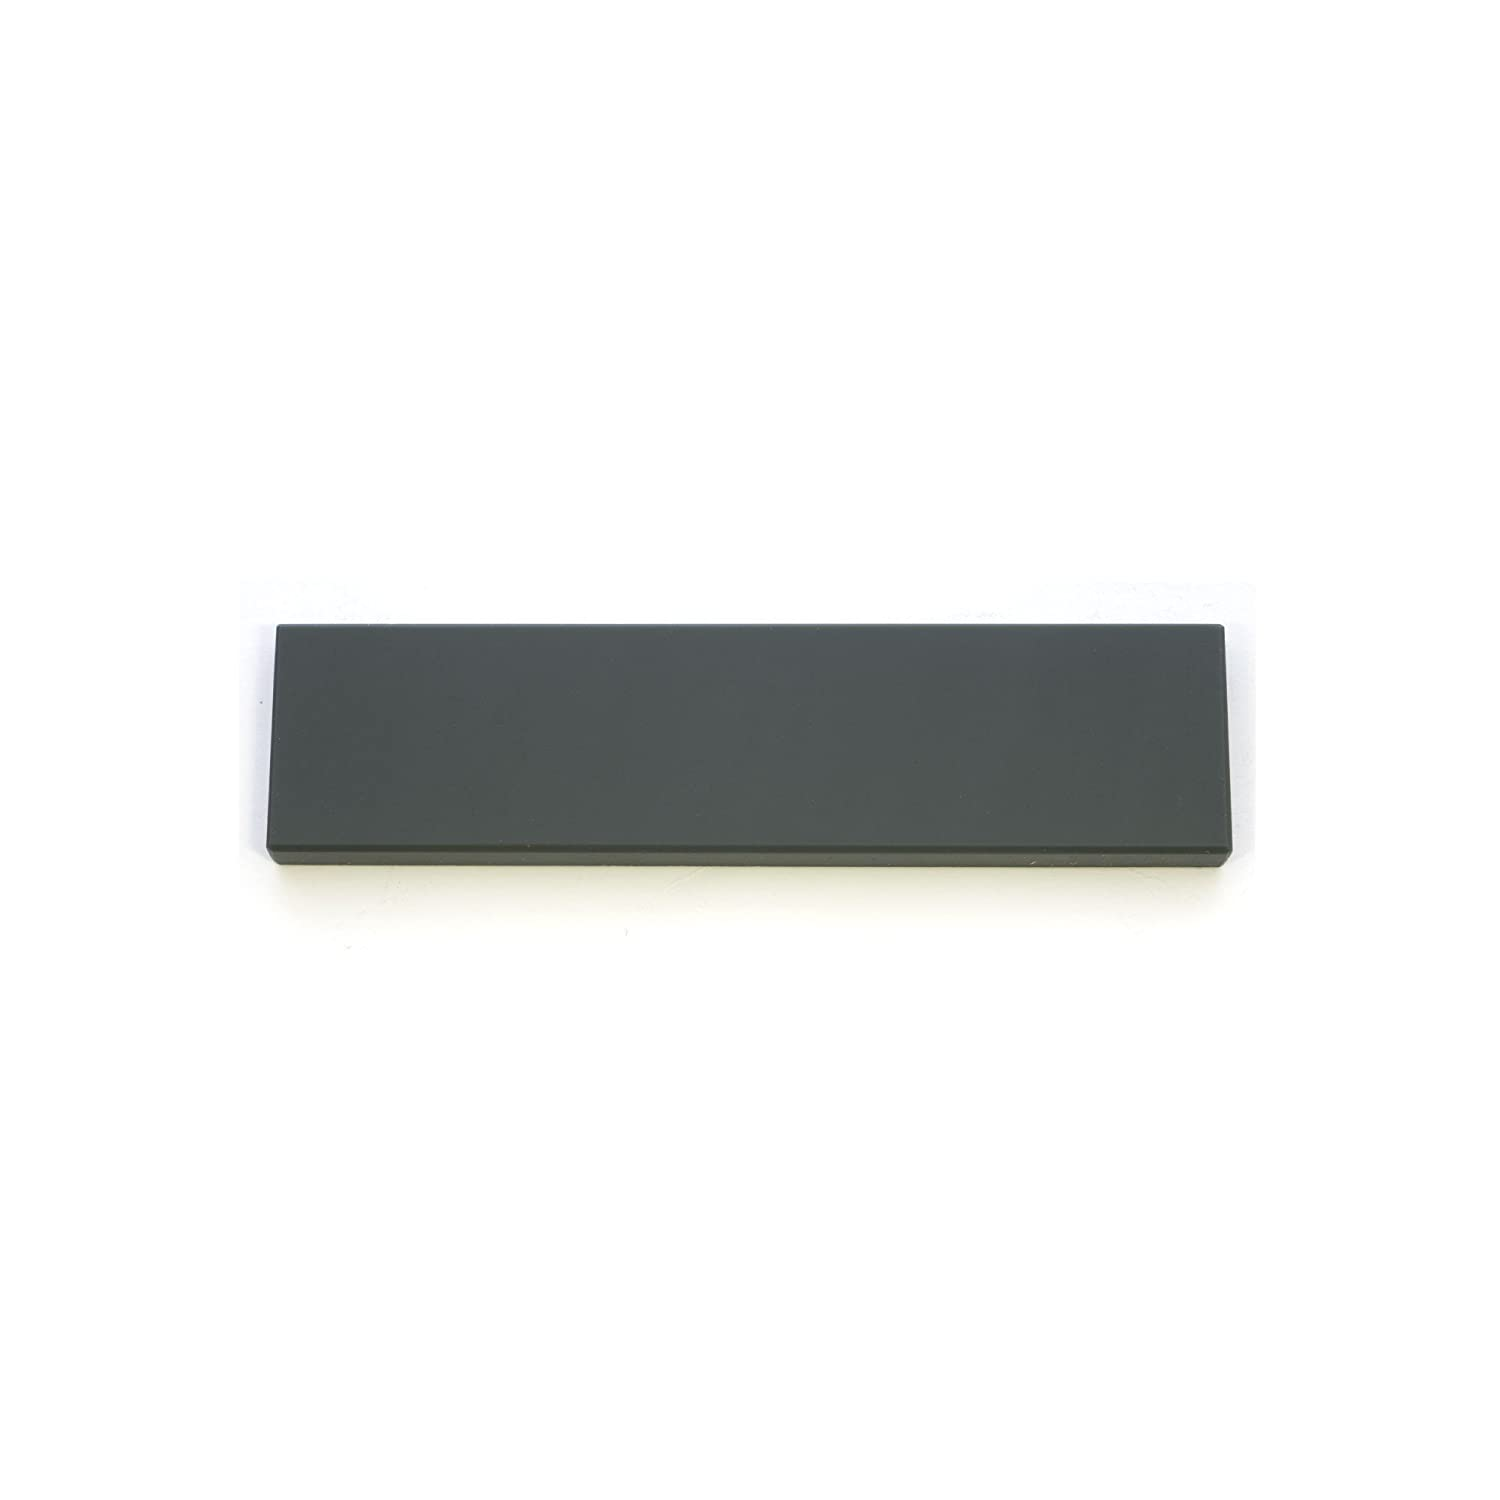 Jasper Whetstone 4 x 1 x 0.25 Russian Natural Sharpening Stone of Estimated 8,000 grit for KME Gritomatic